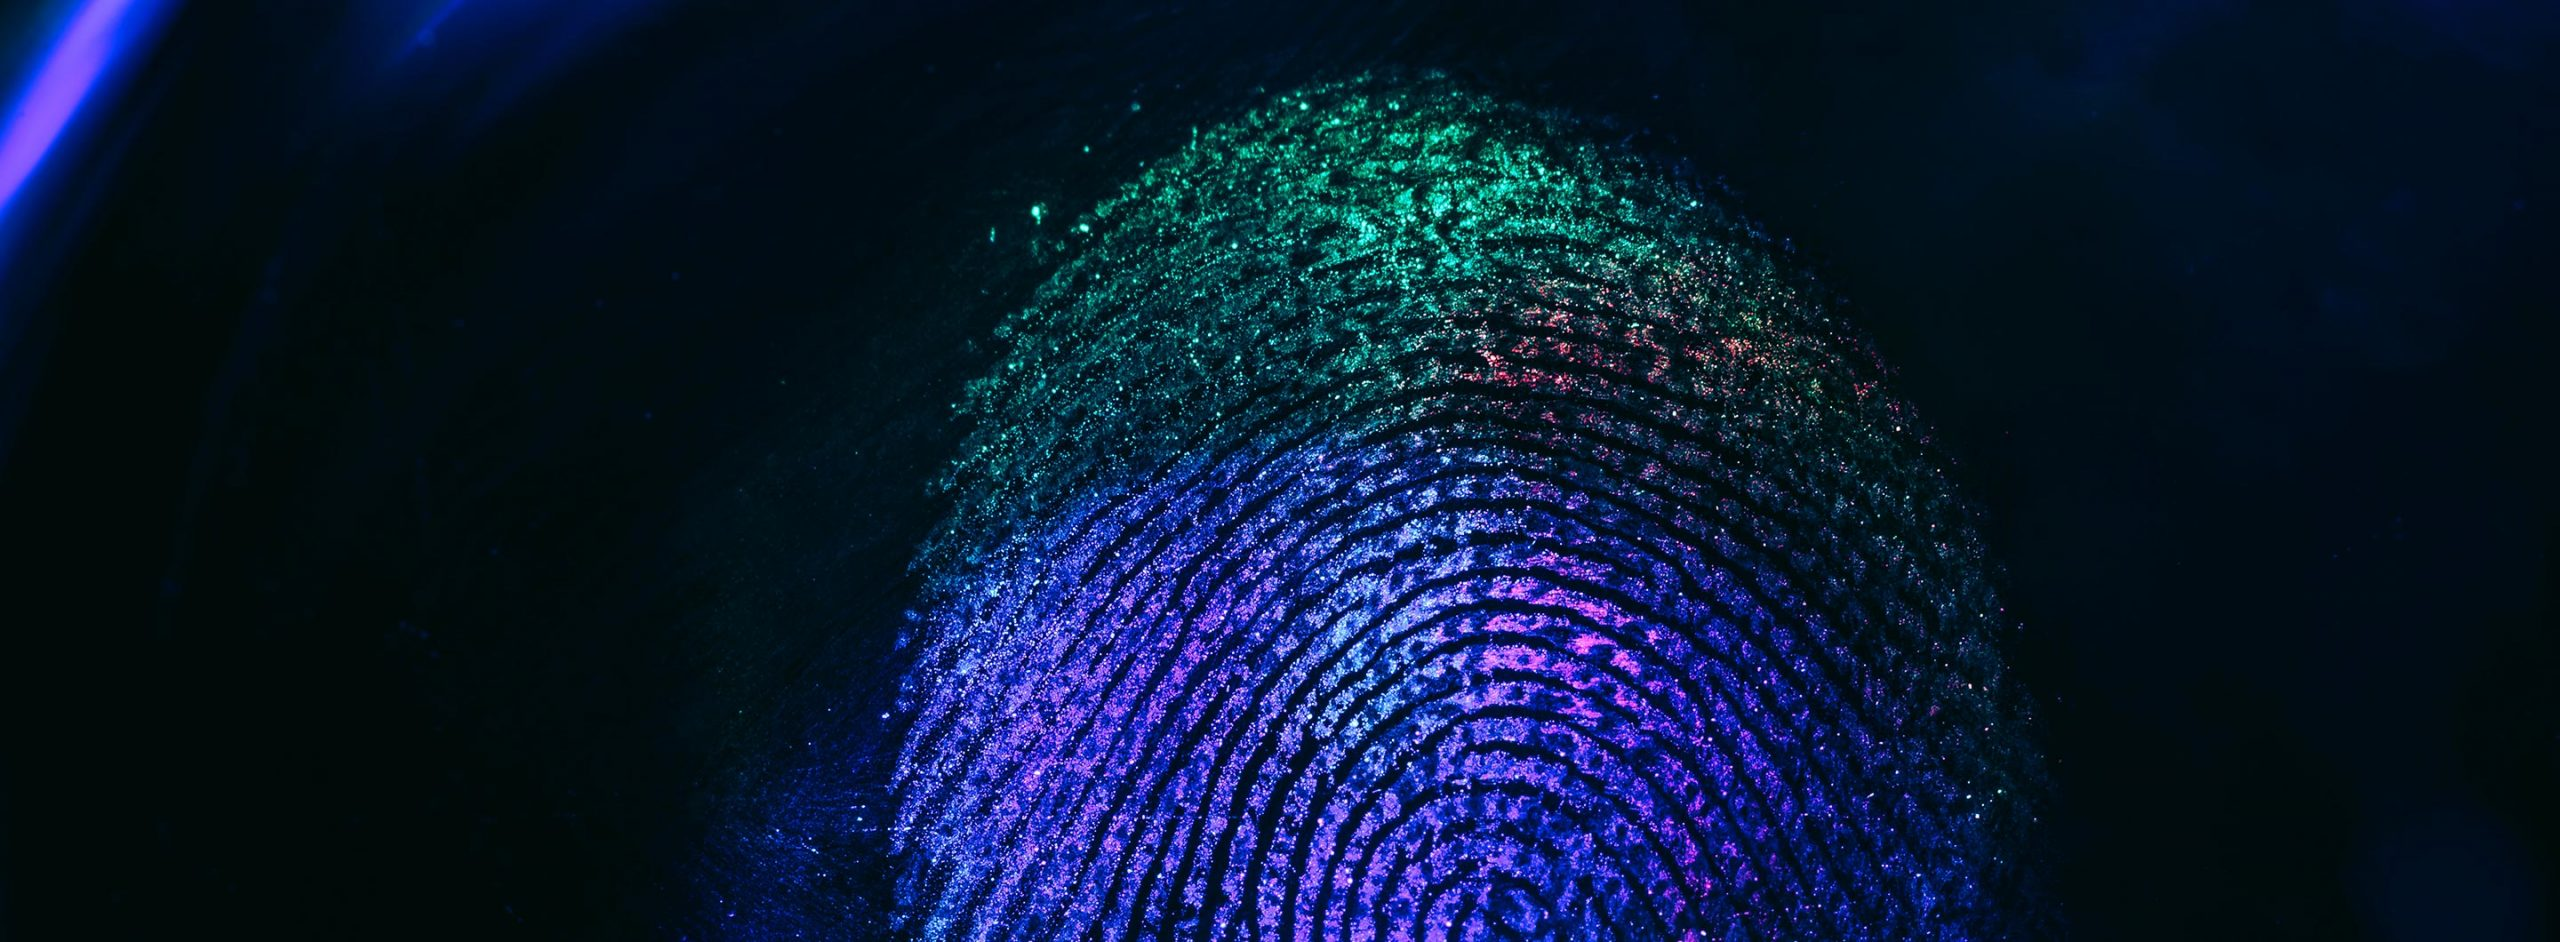 Five Reasons to Modernize Your Identity and Access Management Stack